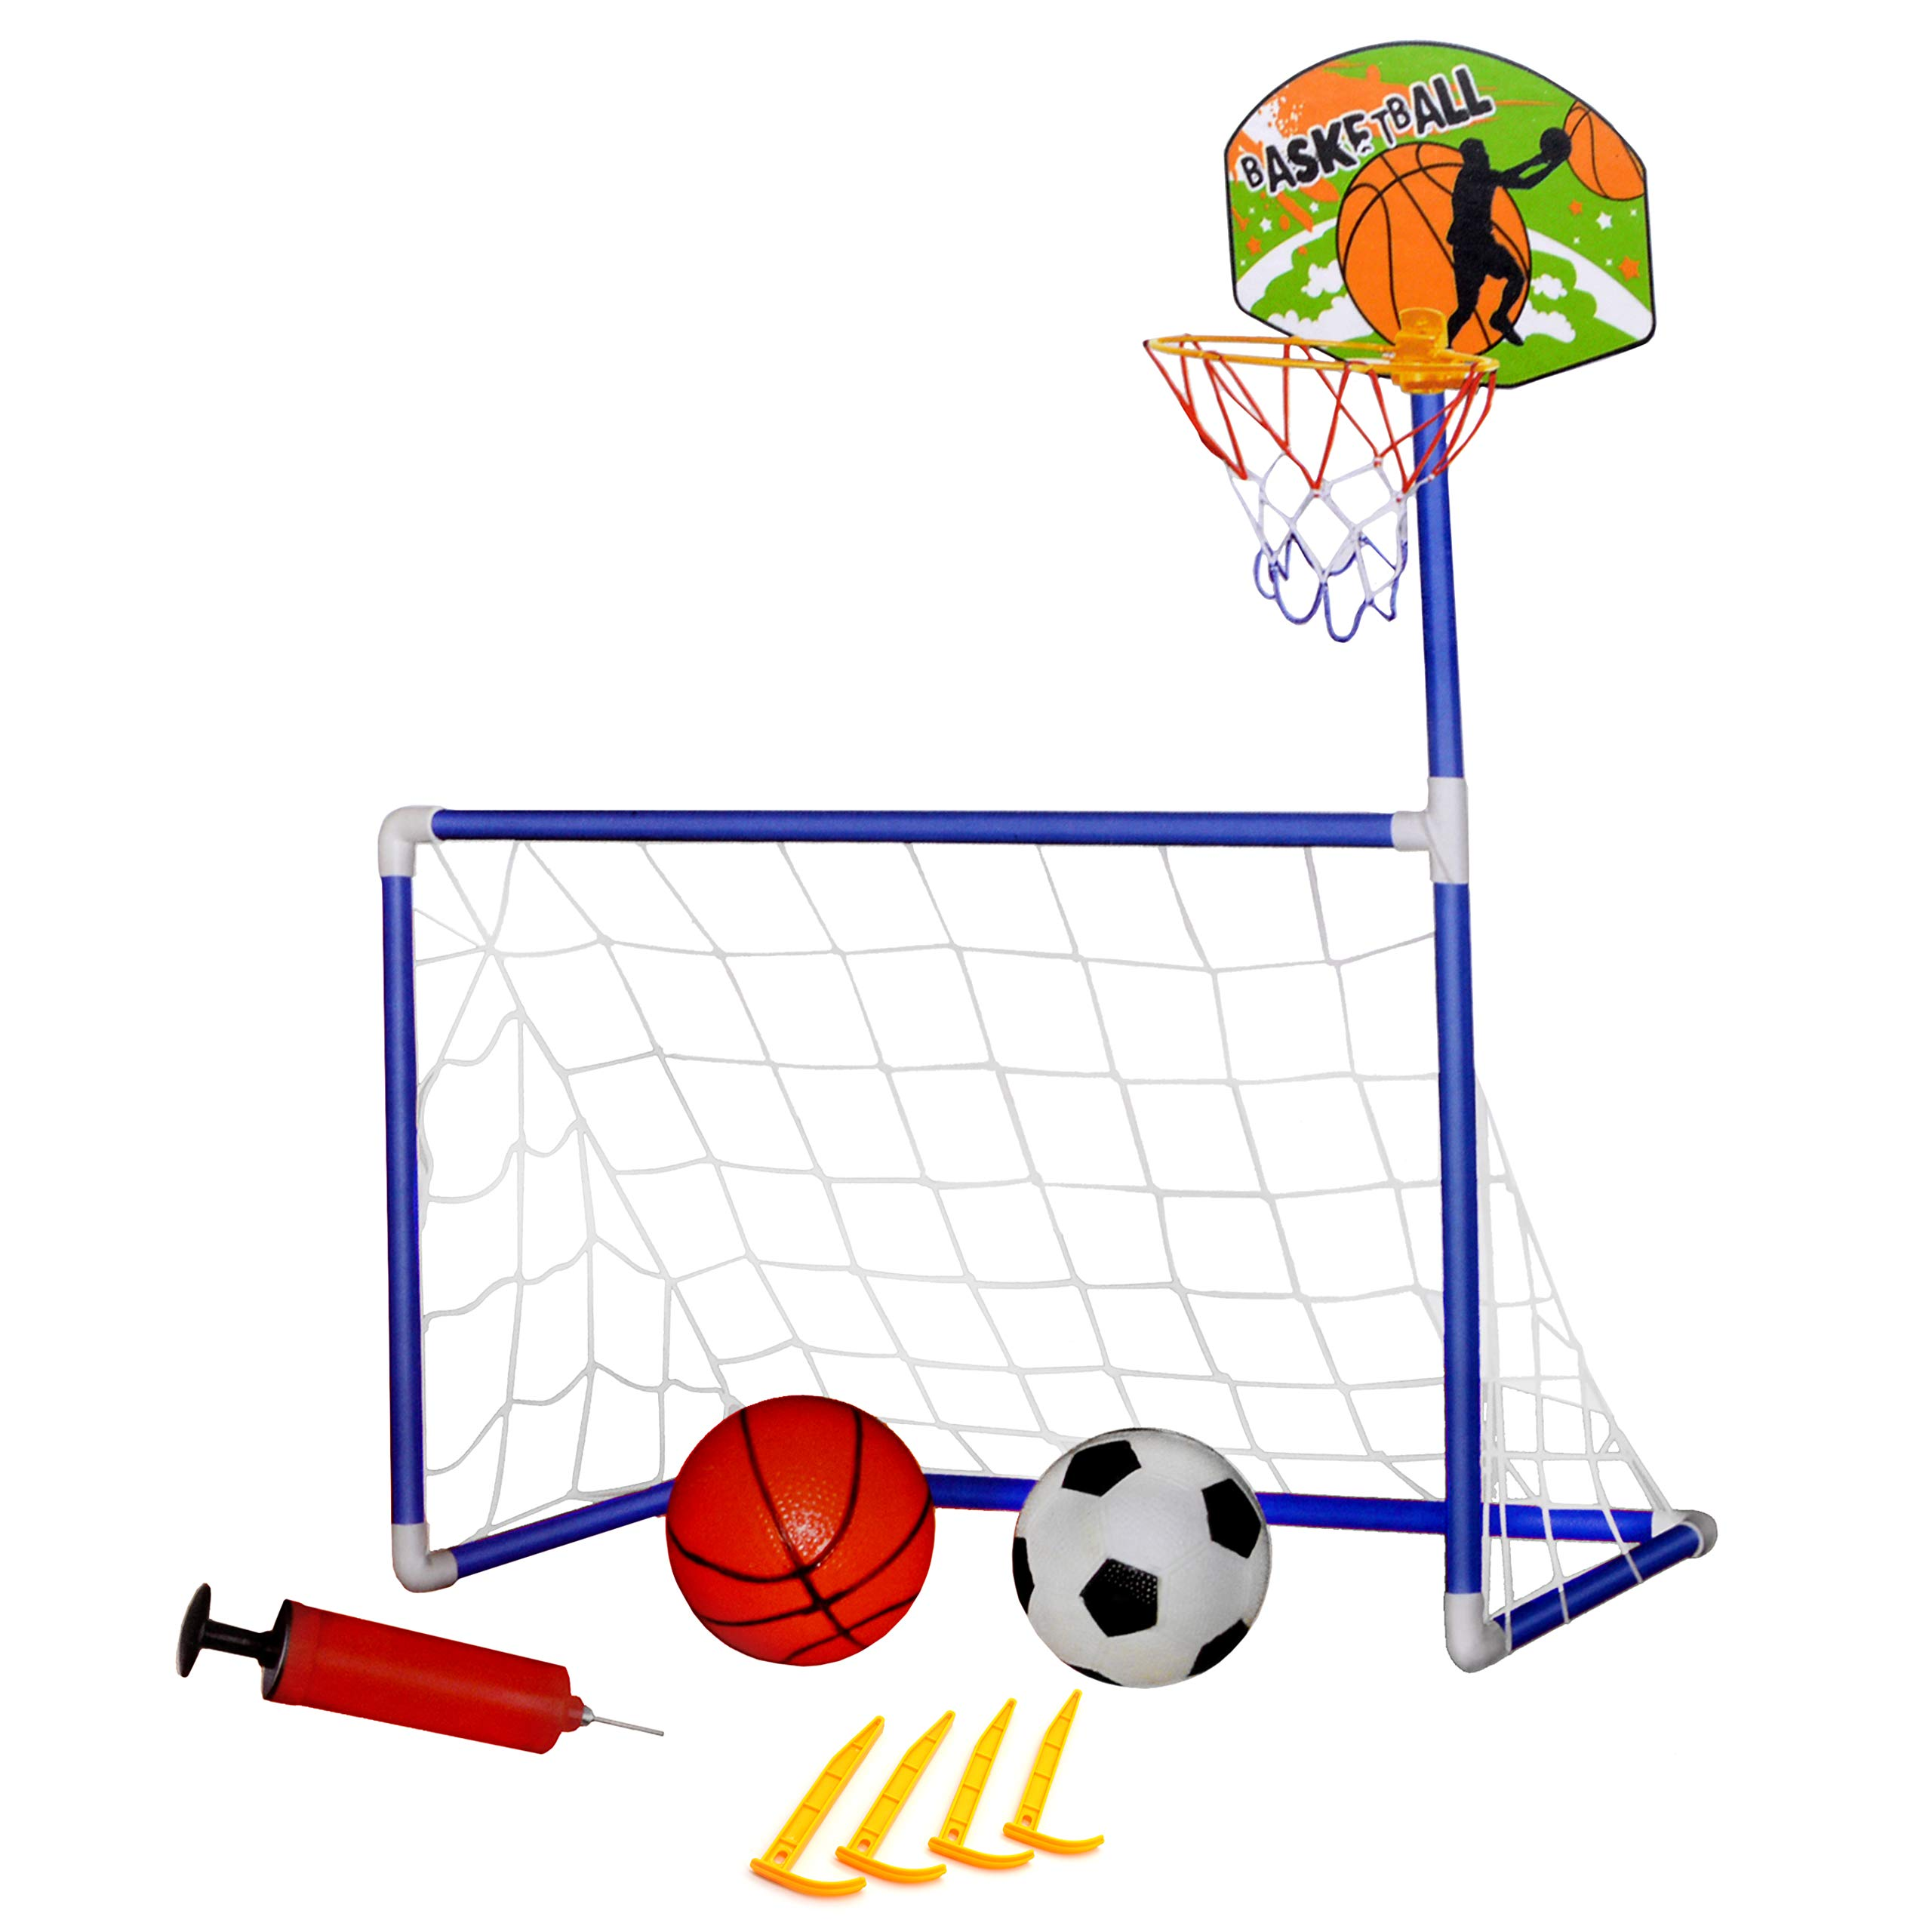 2 in 1 Basketball and Soccer Kids Play Set - Sports Indoor/Outdoor Toys for Boys and Toddlers - Includes Hoop and Goal - (Futbol y Basketball para Niños) by Jimmy's Toys